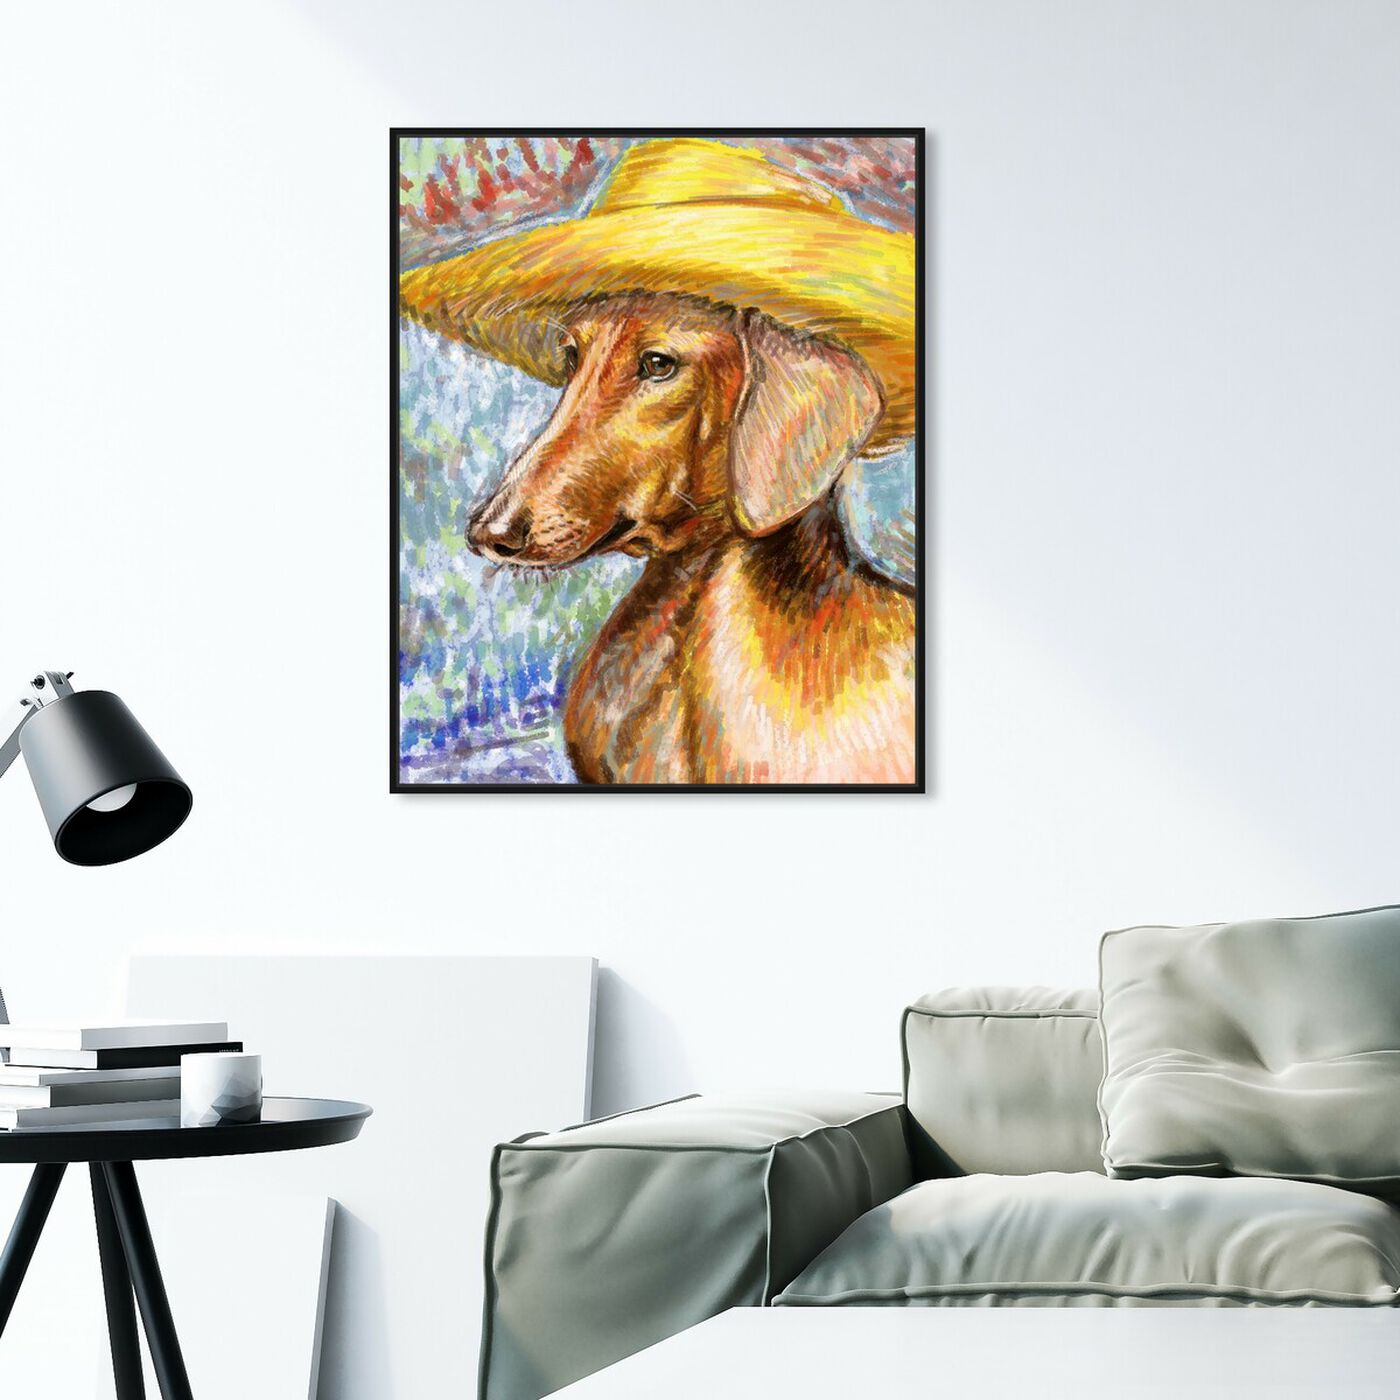 Hanging view of Van Dogh By Carson Kressley featuring animals and dogs and puppies art.